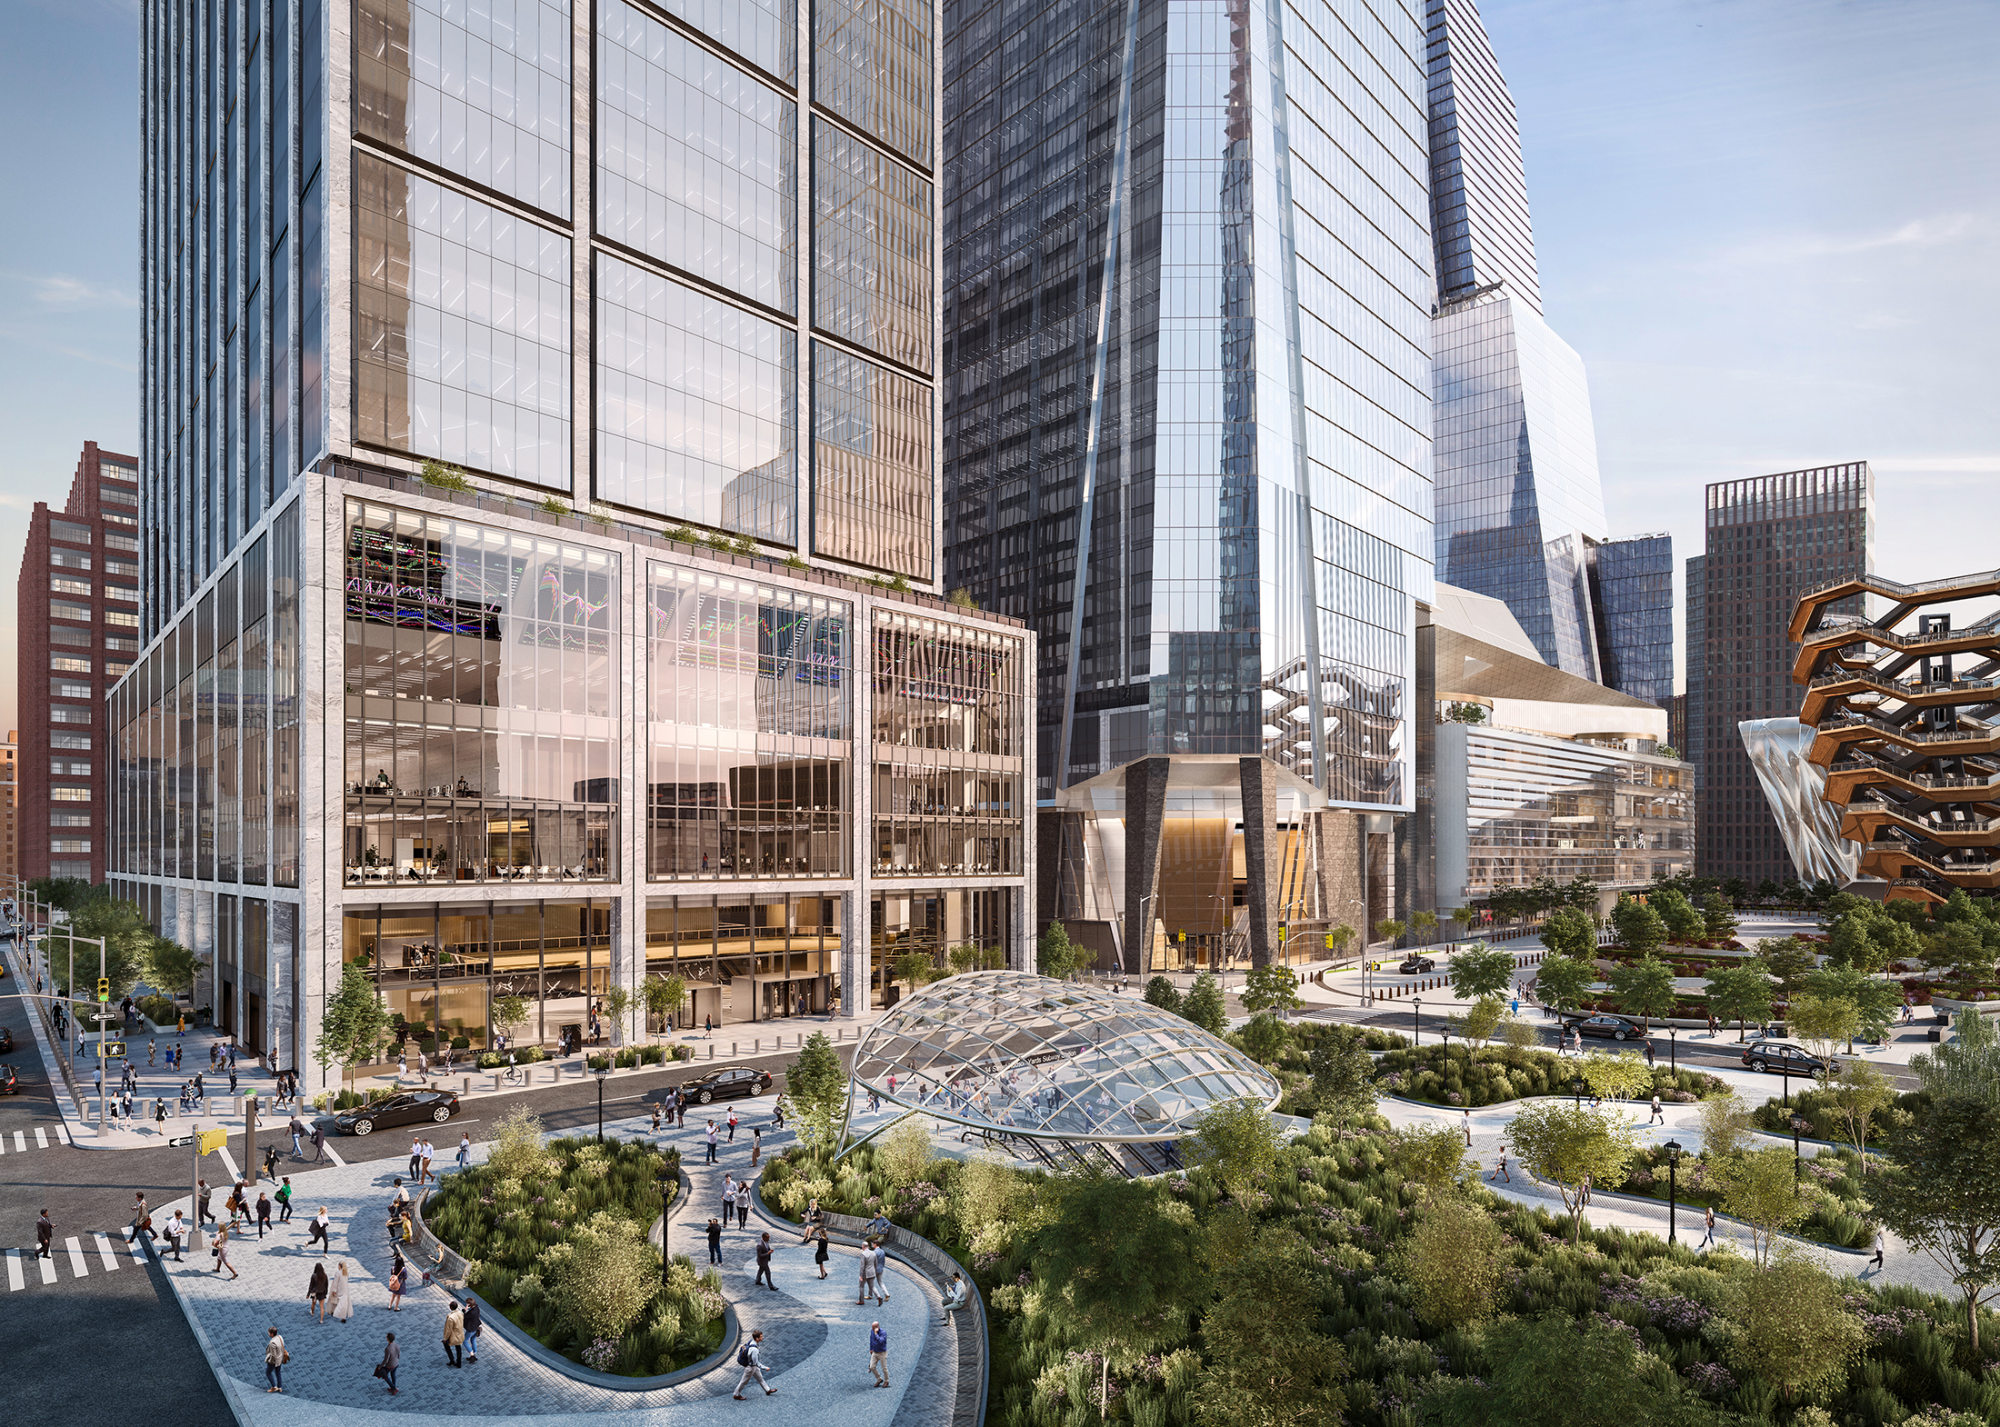 Facebook Is In Talks To Lease Space At Hudson Yards Skyscraper Bloomberg